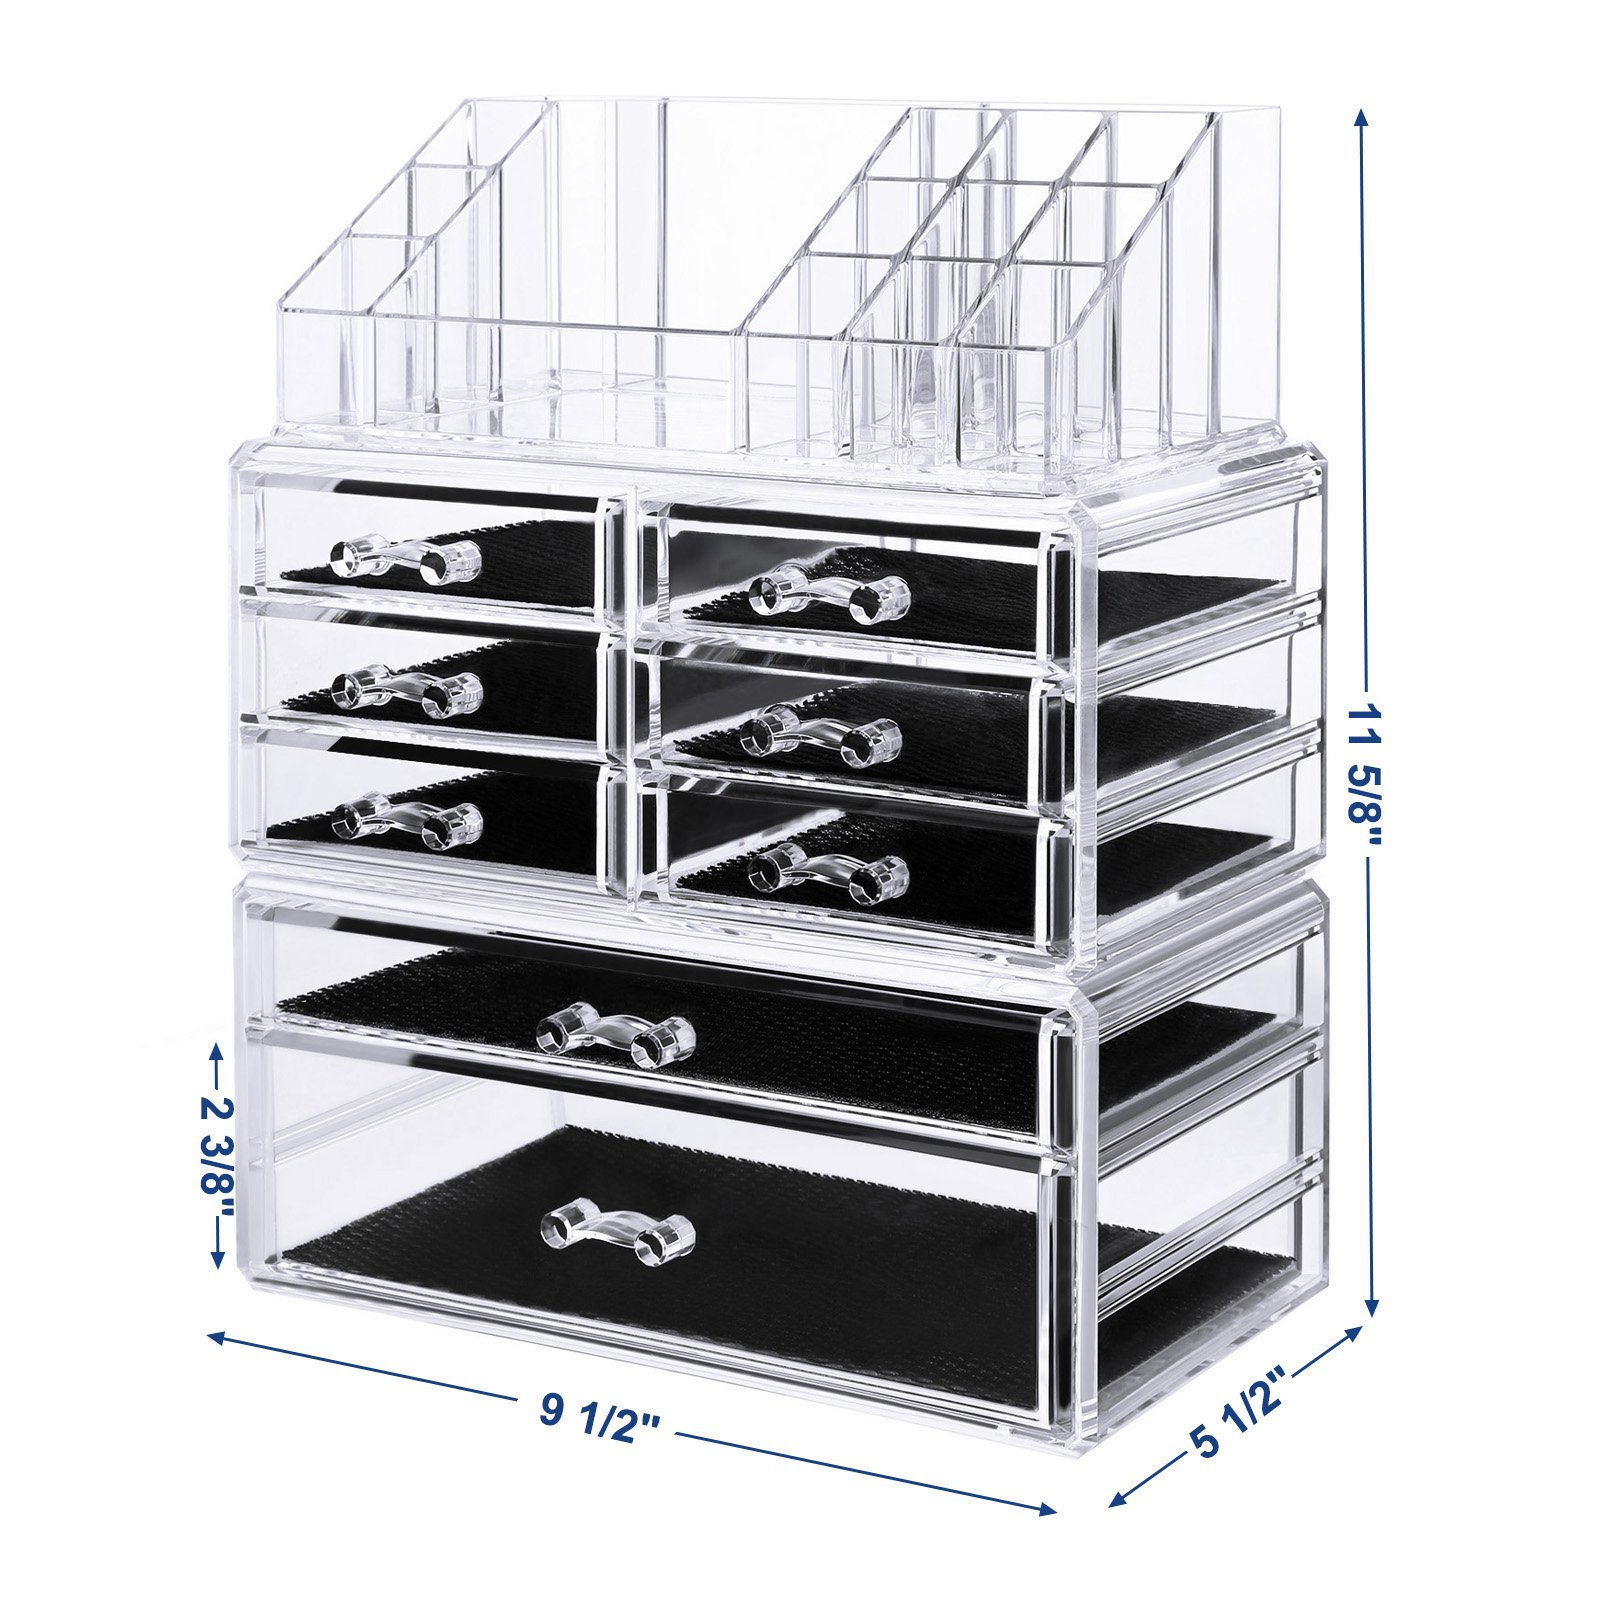 SONGMICS Acrylic Makeup Organizer 3 Pieces Set Cosmetic Storage Jewelry Display Case 8 Drawers 16 Top Compartments Brushes Pallets Powder Foundations Clear UJMU08T